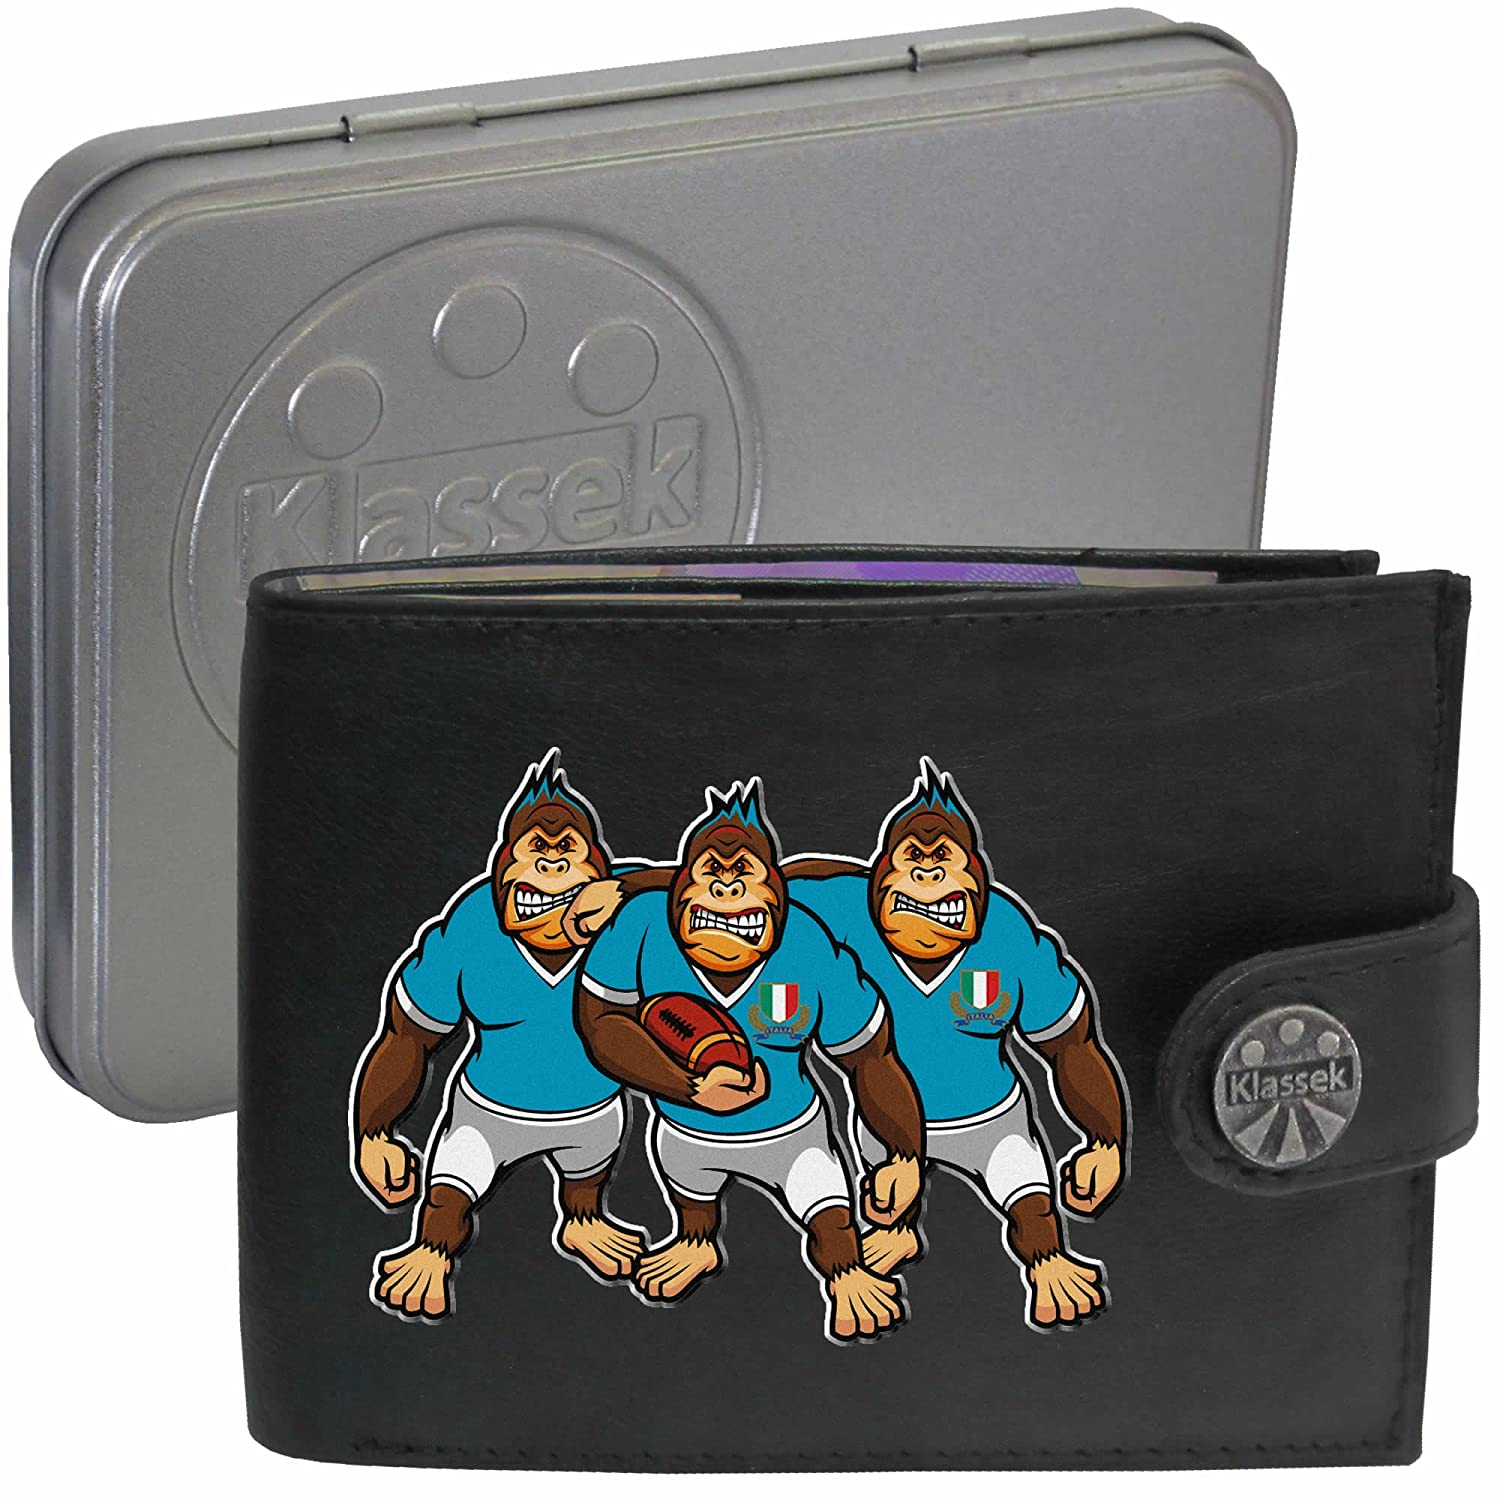 Klassek Italian ITALY Rugby Gorilla Caricatures Mens Black Leather Wallet Novelty Shirt Joke image